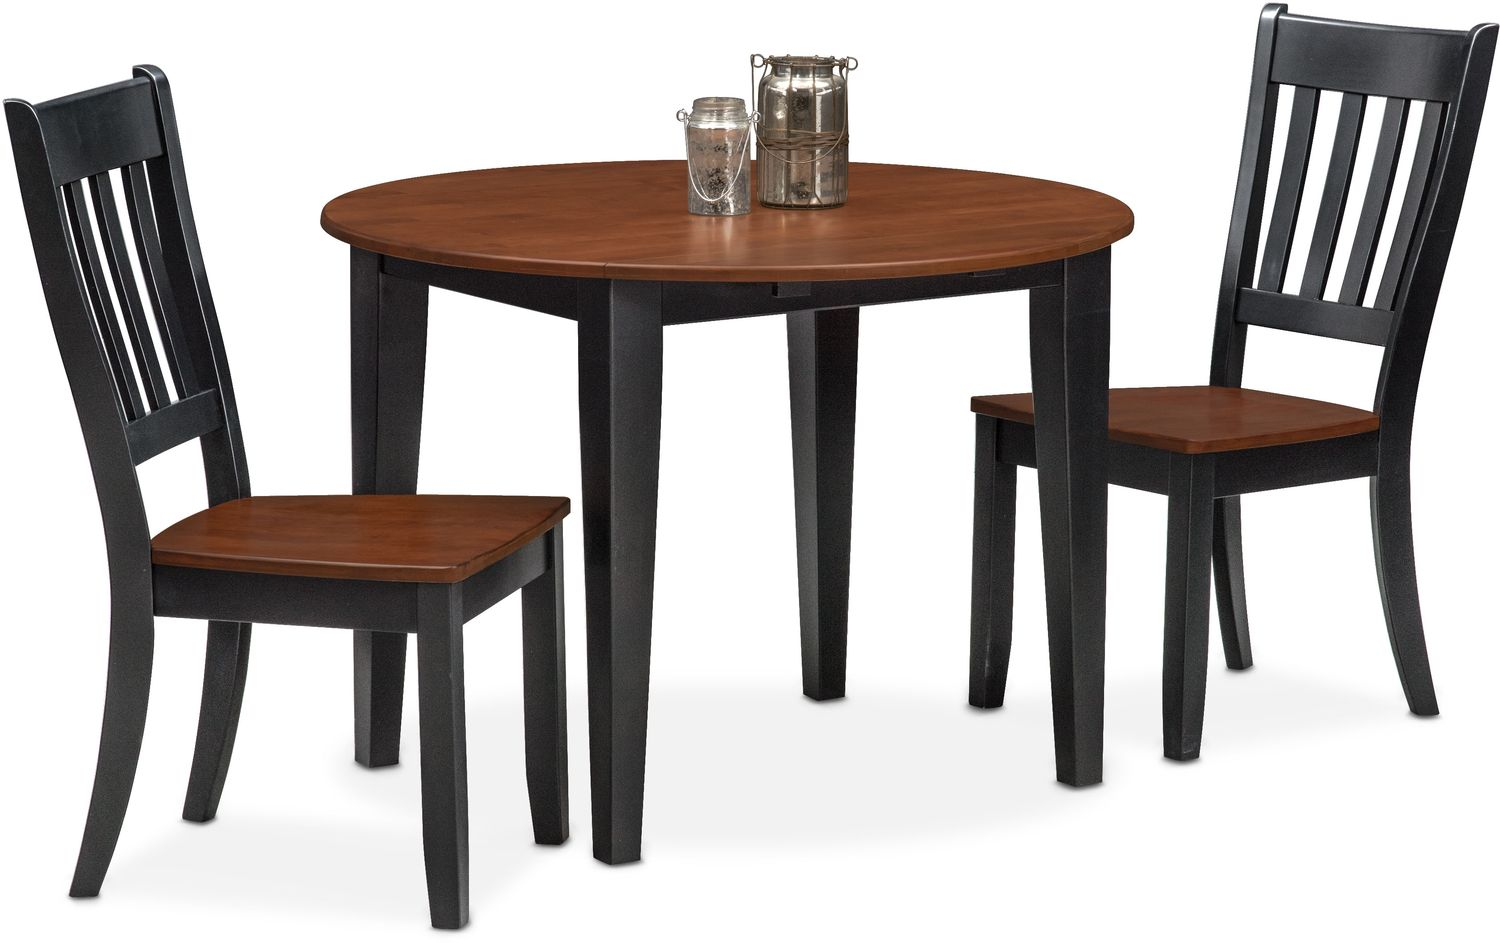 Slat Back Chairs nantucket drop-leaf table and 2 slat-back chairs - black and